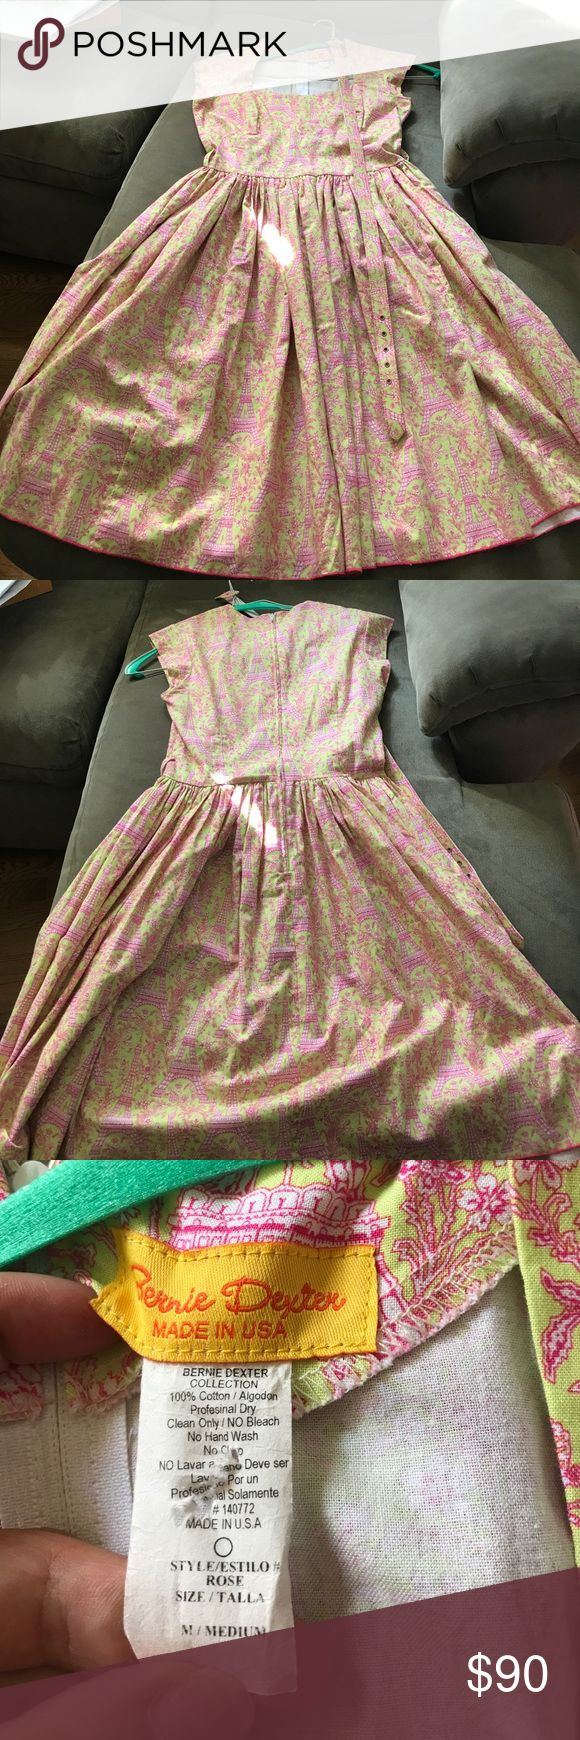 """Medium Bernie Dexter Rose dress in Eiffel Tower This dress comes with a belt.  Bust is 17"""" flat and 18"""" pit to pit.  Waist is 14"""" flat.  Pockets! Bernie Dexter Dresses"""